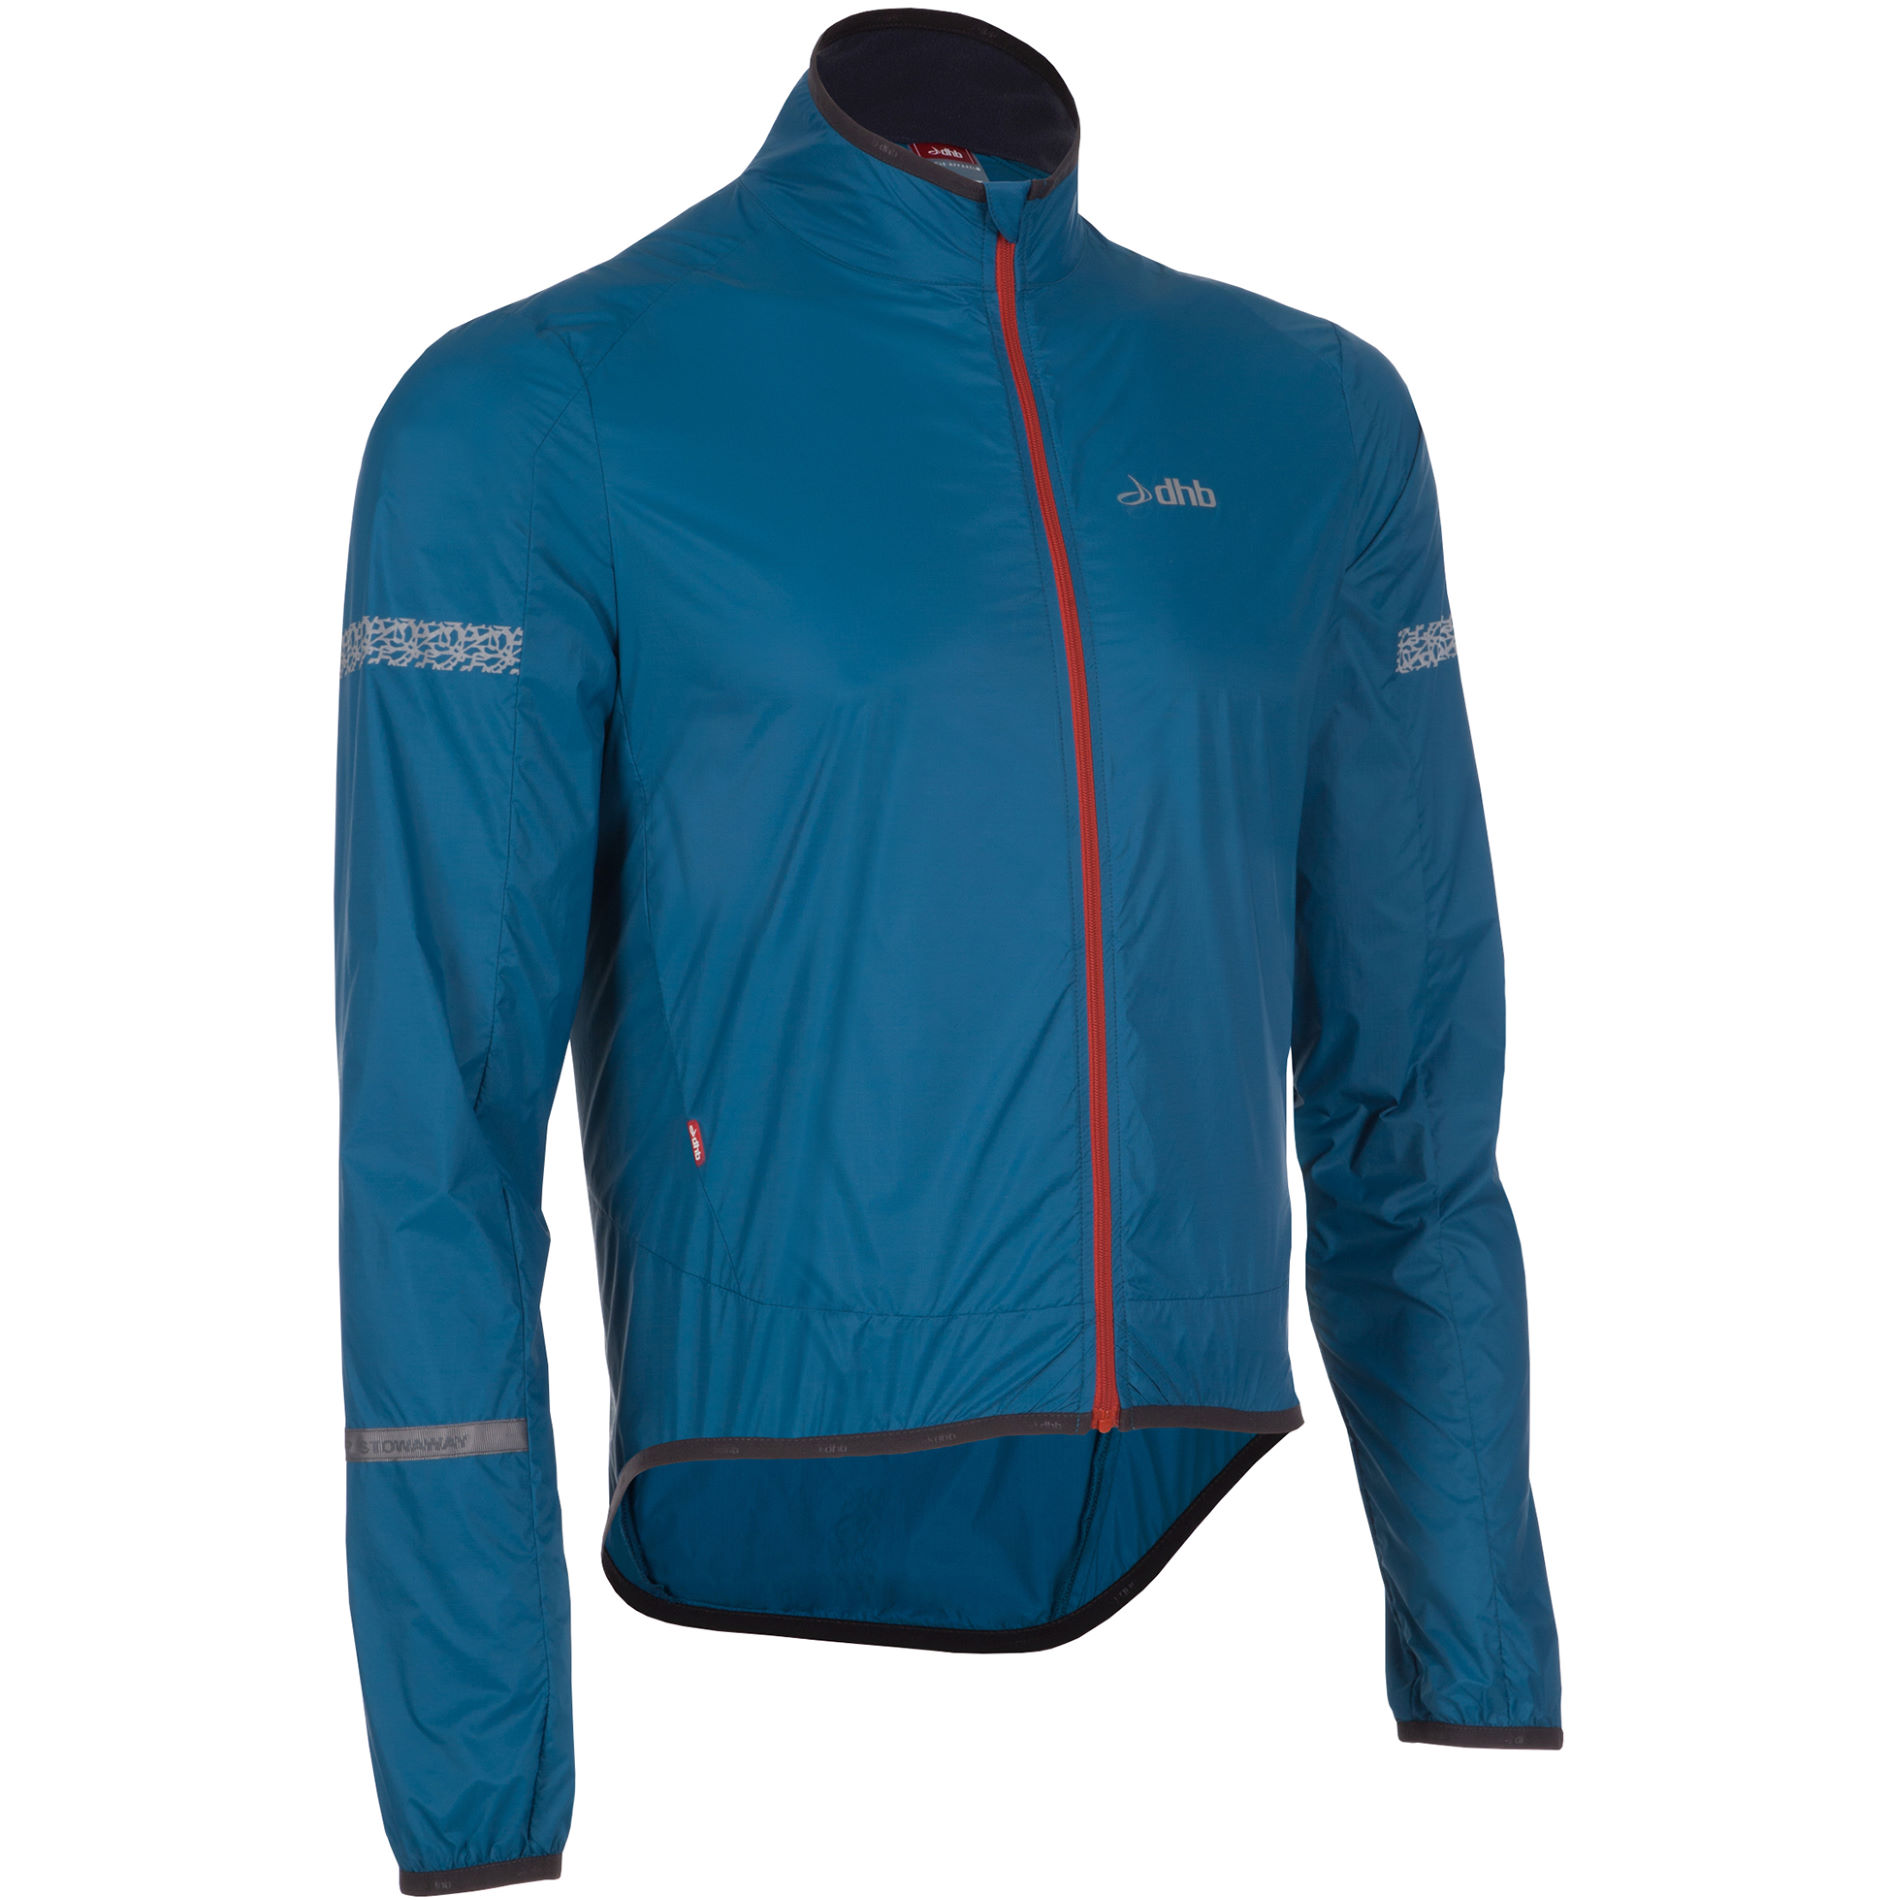 The Houdini is the most iconic wind jacket and still the best. It does what a windbreaker jacket should — protects you from wind and light rain in the most compact form possible. It does what a windbreaker jacket should — protects you from wind and light rain in the most compact form possible.